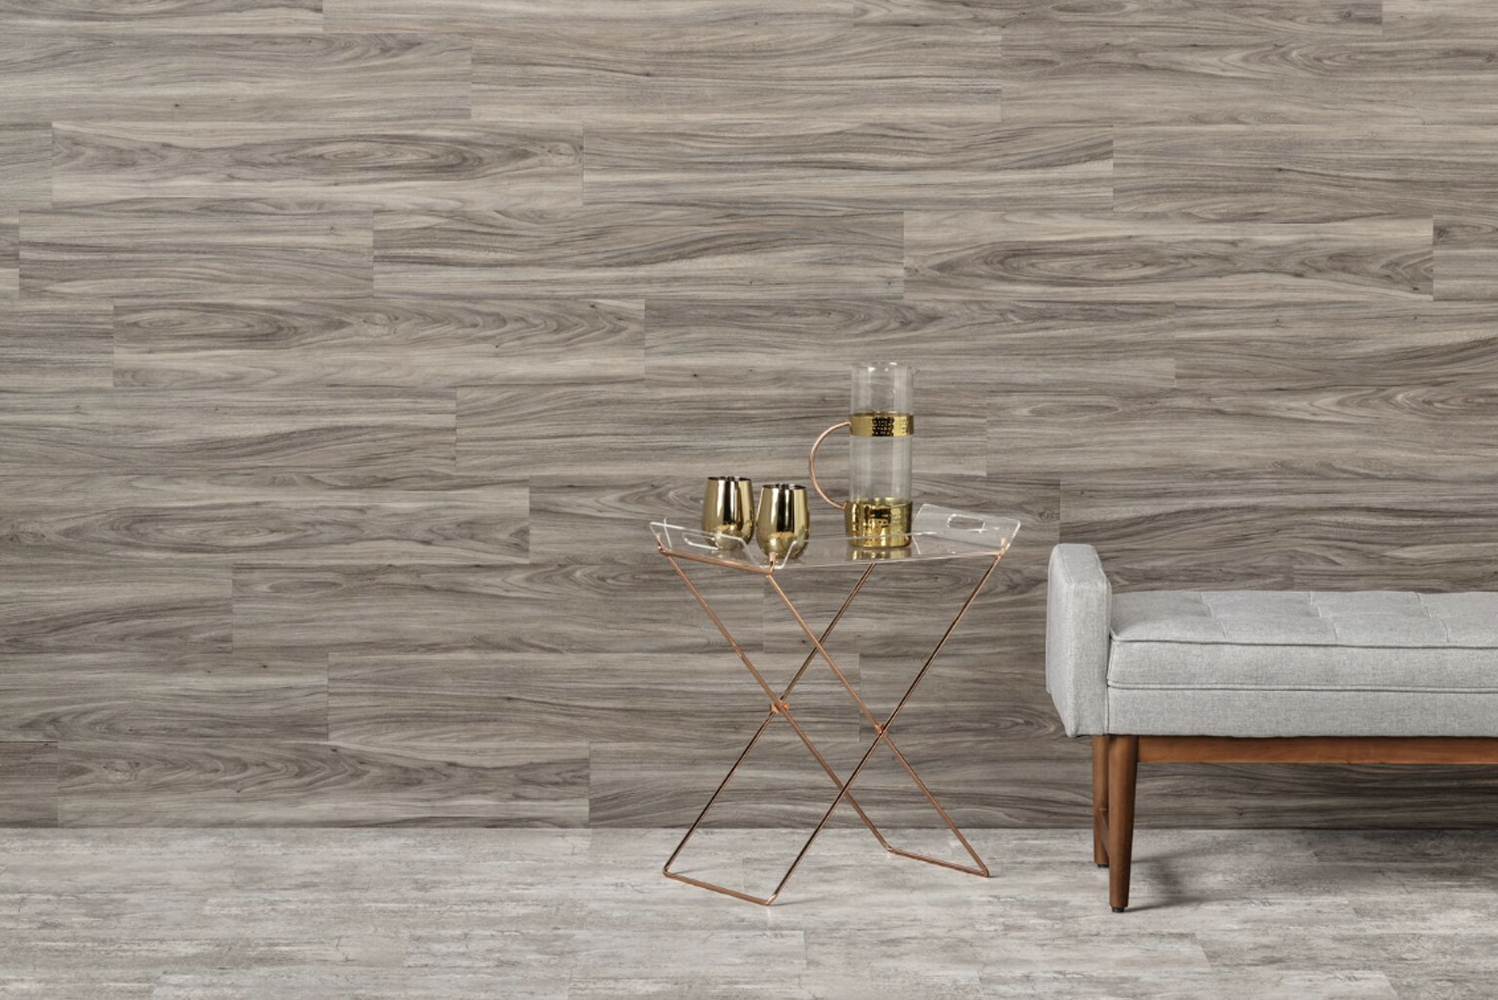 Avara's vinyl options range from soft wood grains and contemporary planks to delicate stone looks, incorporating the resimercial trend often found in commercial design.